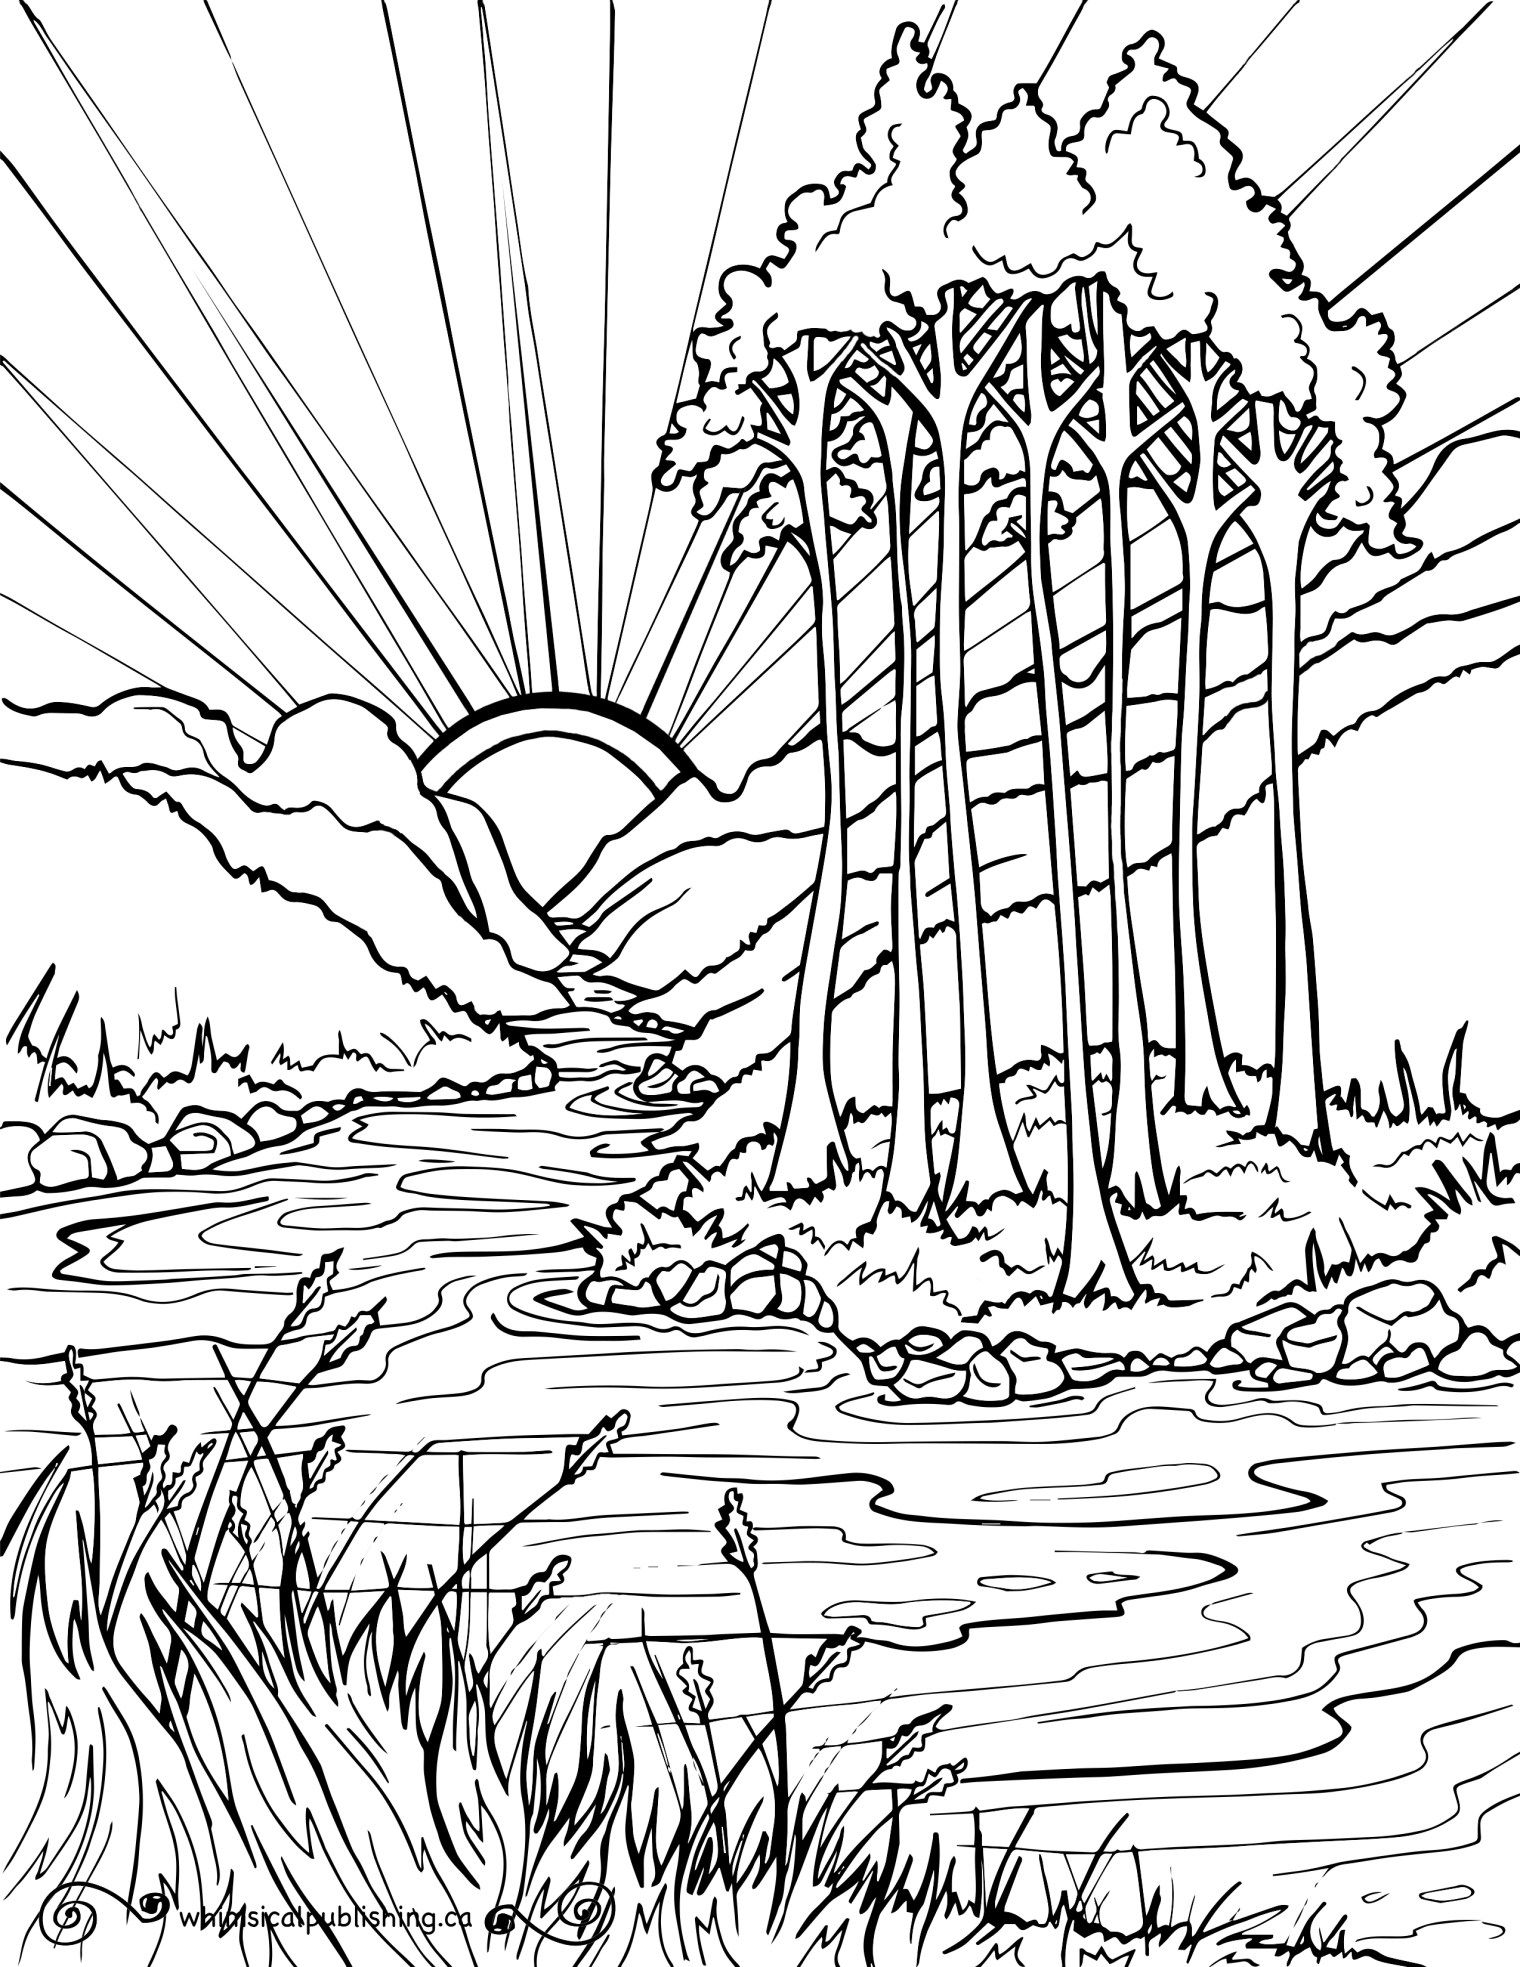 Free Colouring Pages Abstract Coloring Pages Cartoon Coloring Pages Coloring Pages Nature